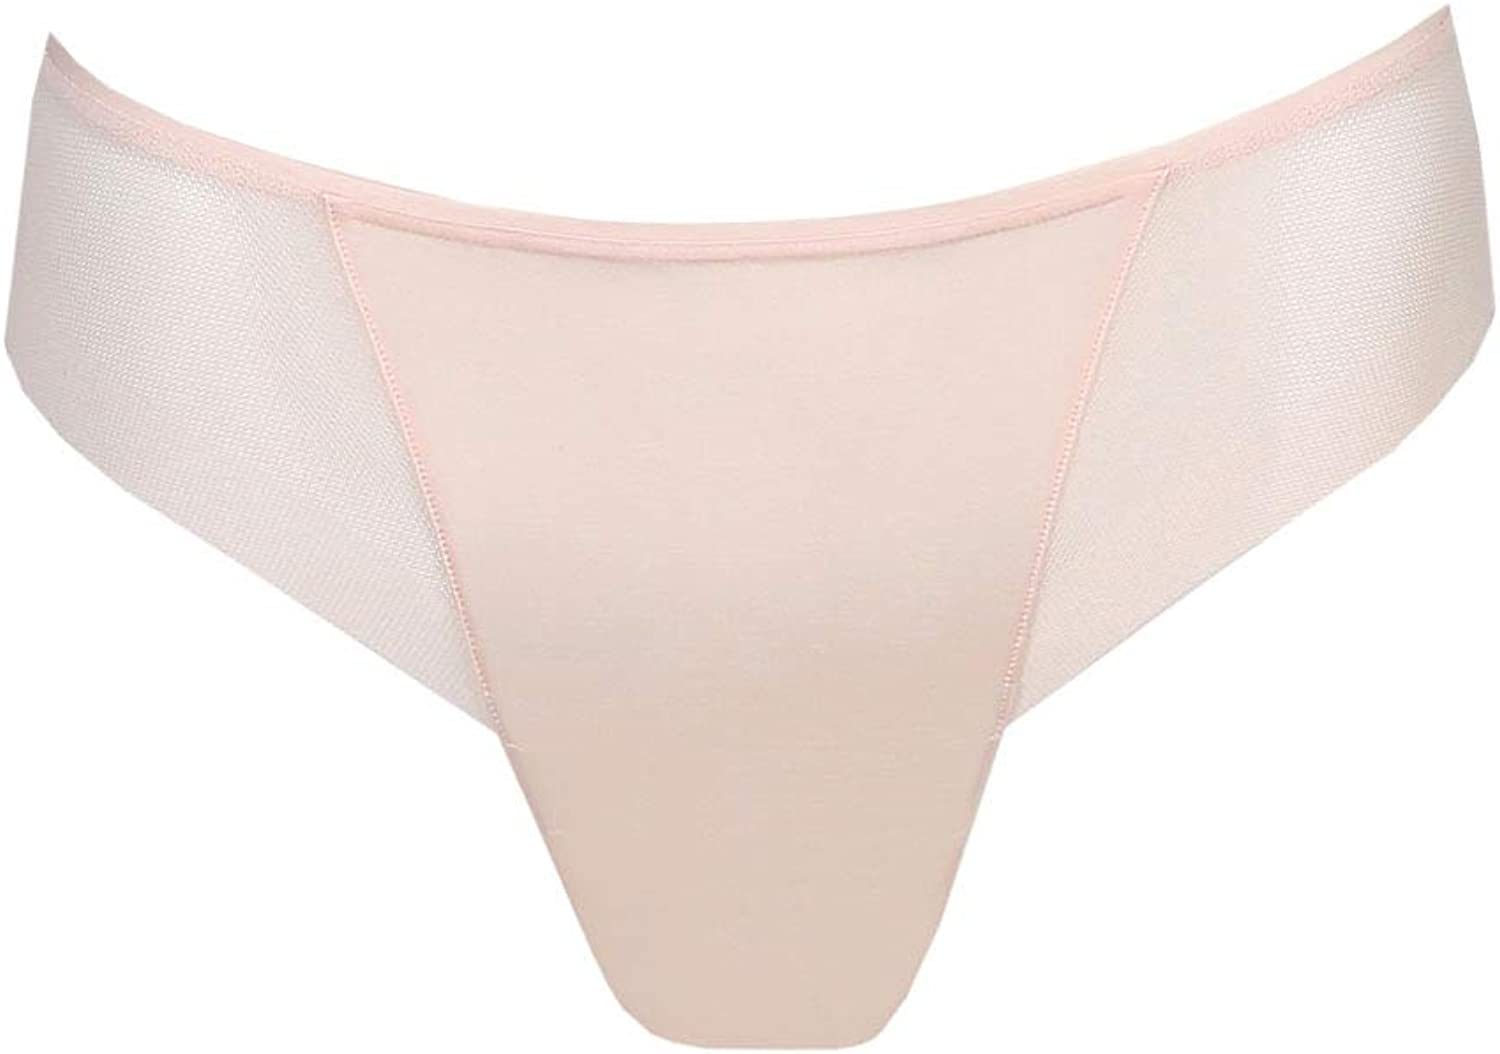 PrimaDonna Every Woman Max 81% OFF 0663110-PIB Import Women's Pink Med Thong Blush